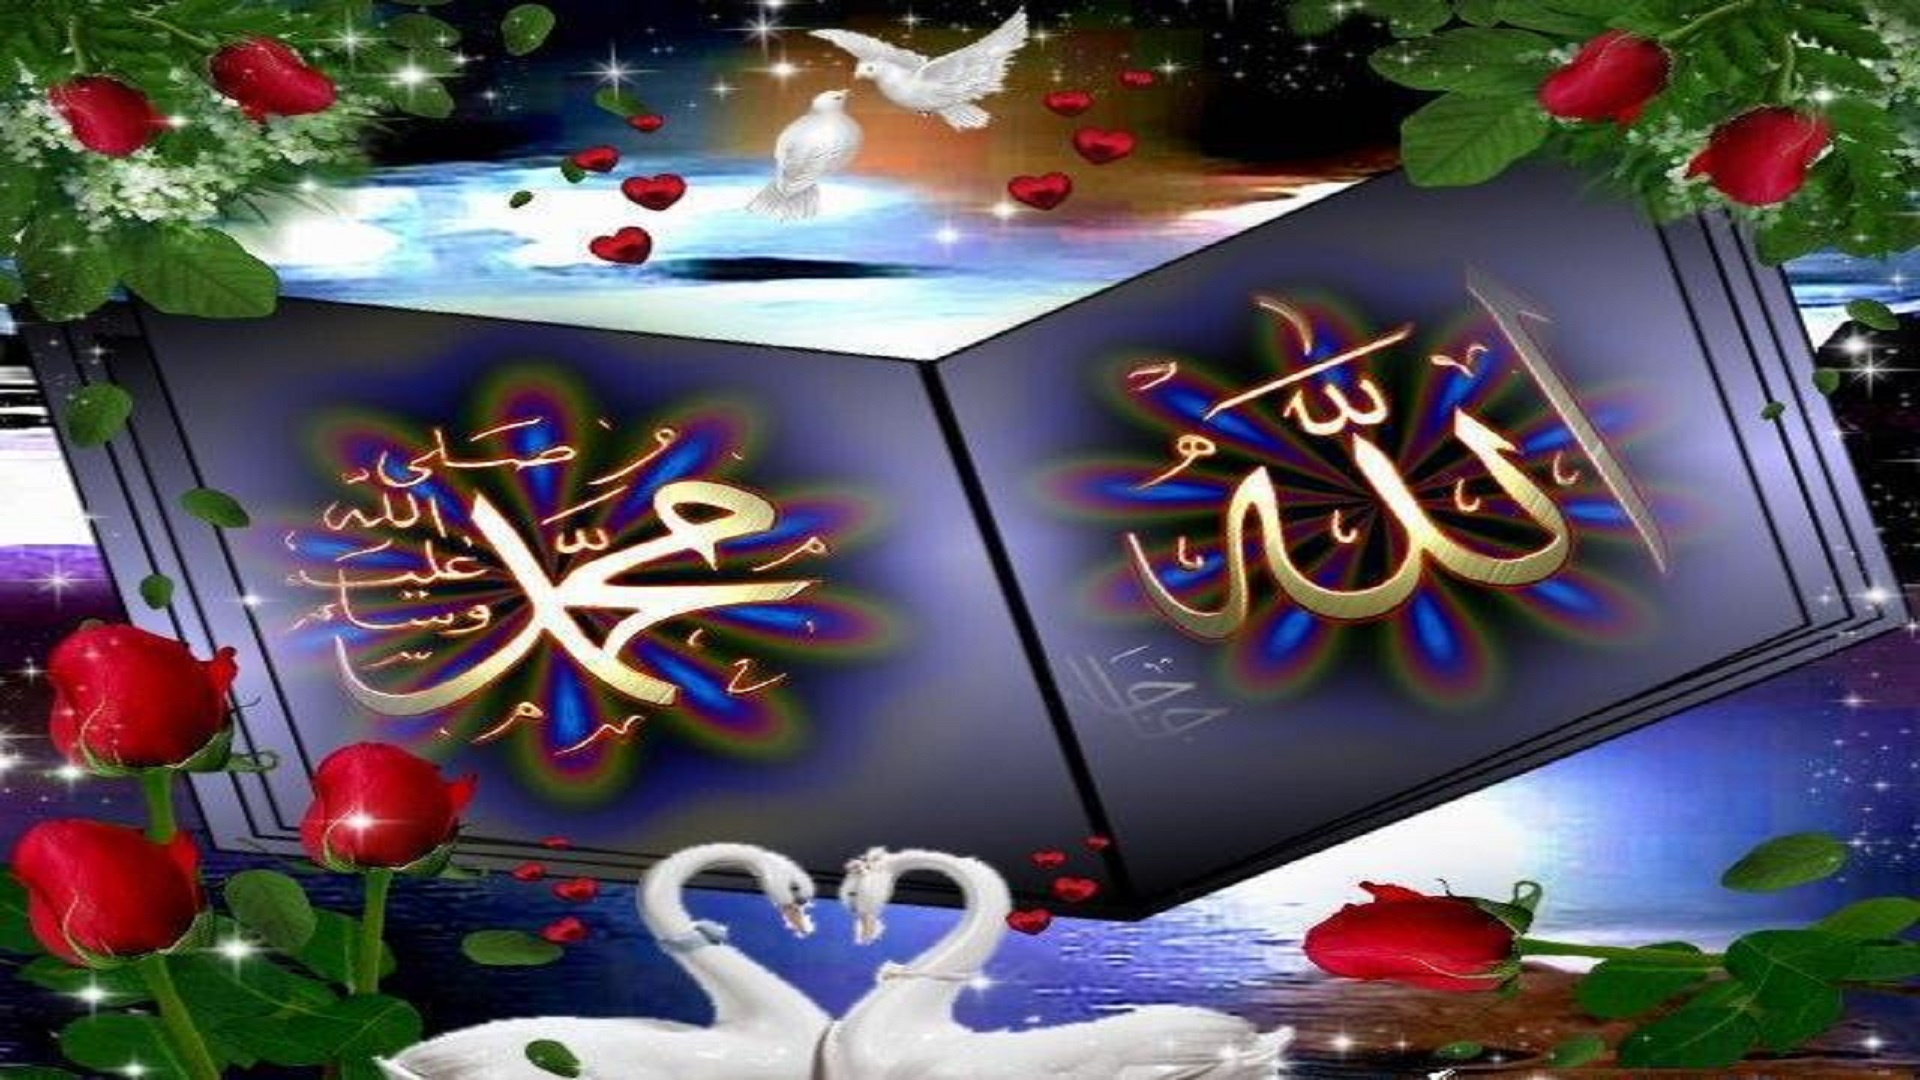 5 Best Islamic Live Wallpapers Apps for AndroidVery Good 3d Islamic Wallpapers Collection